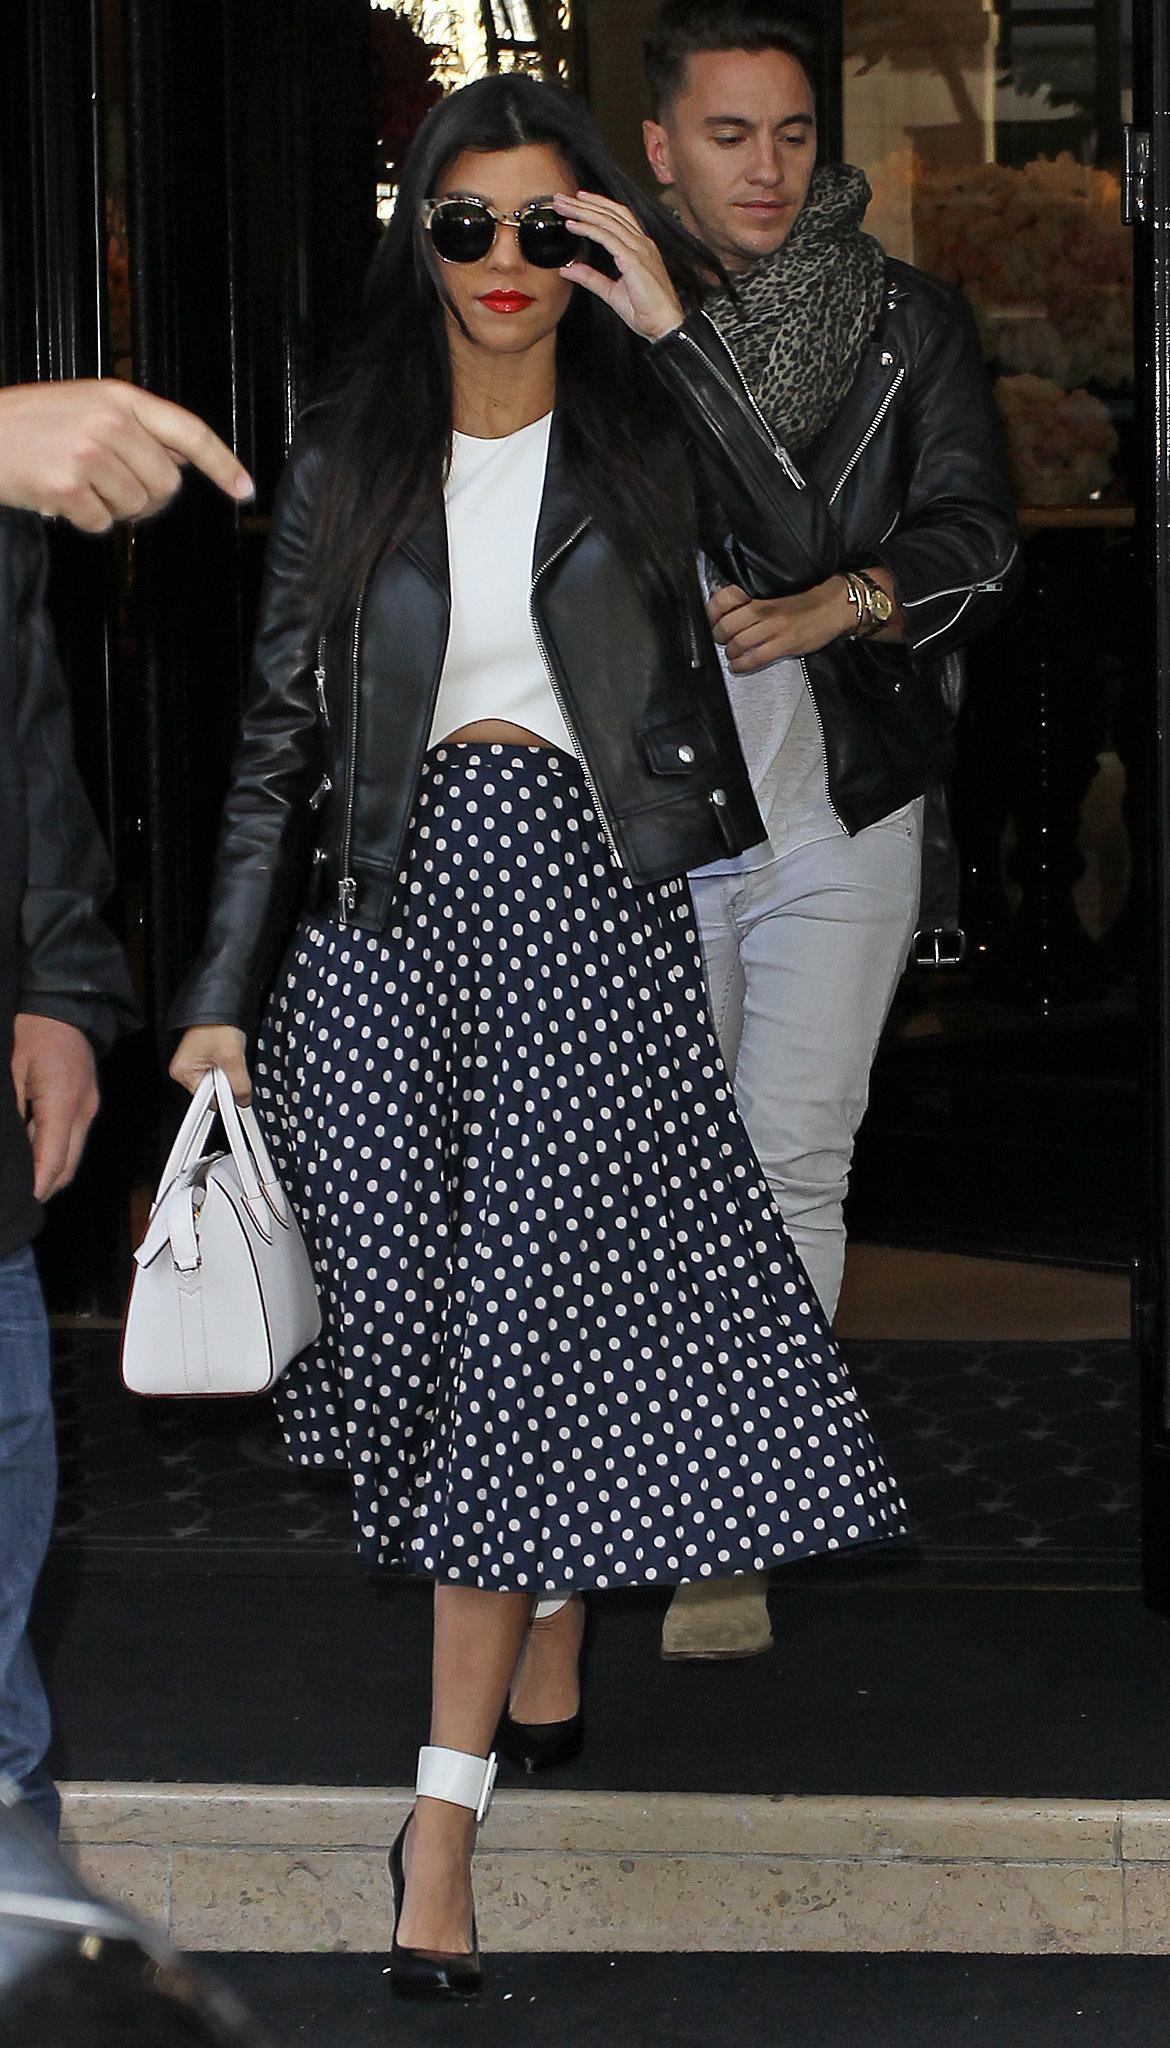 Kourtney Kardashian wore a spotted skirt during a Thursday outing in Paris.